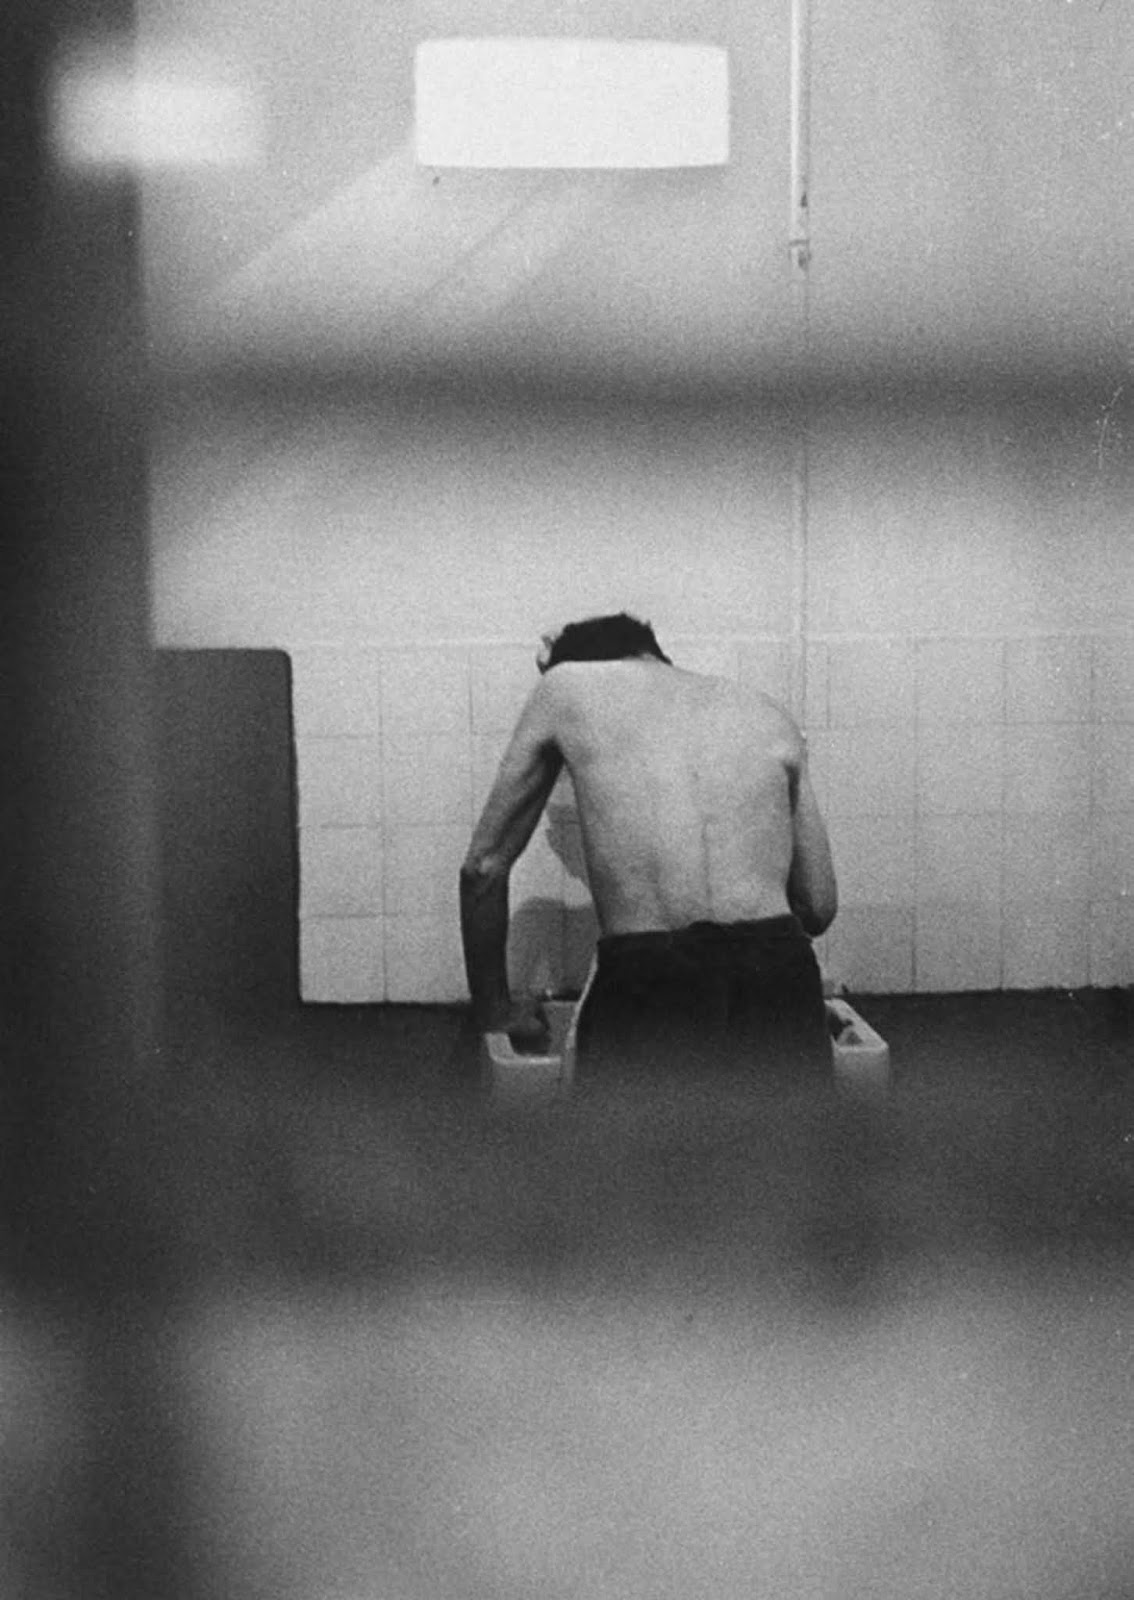 His daily bath was a make-do affair but part of the prison's strict routine.